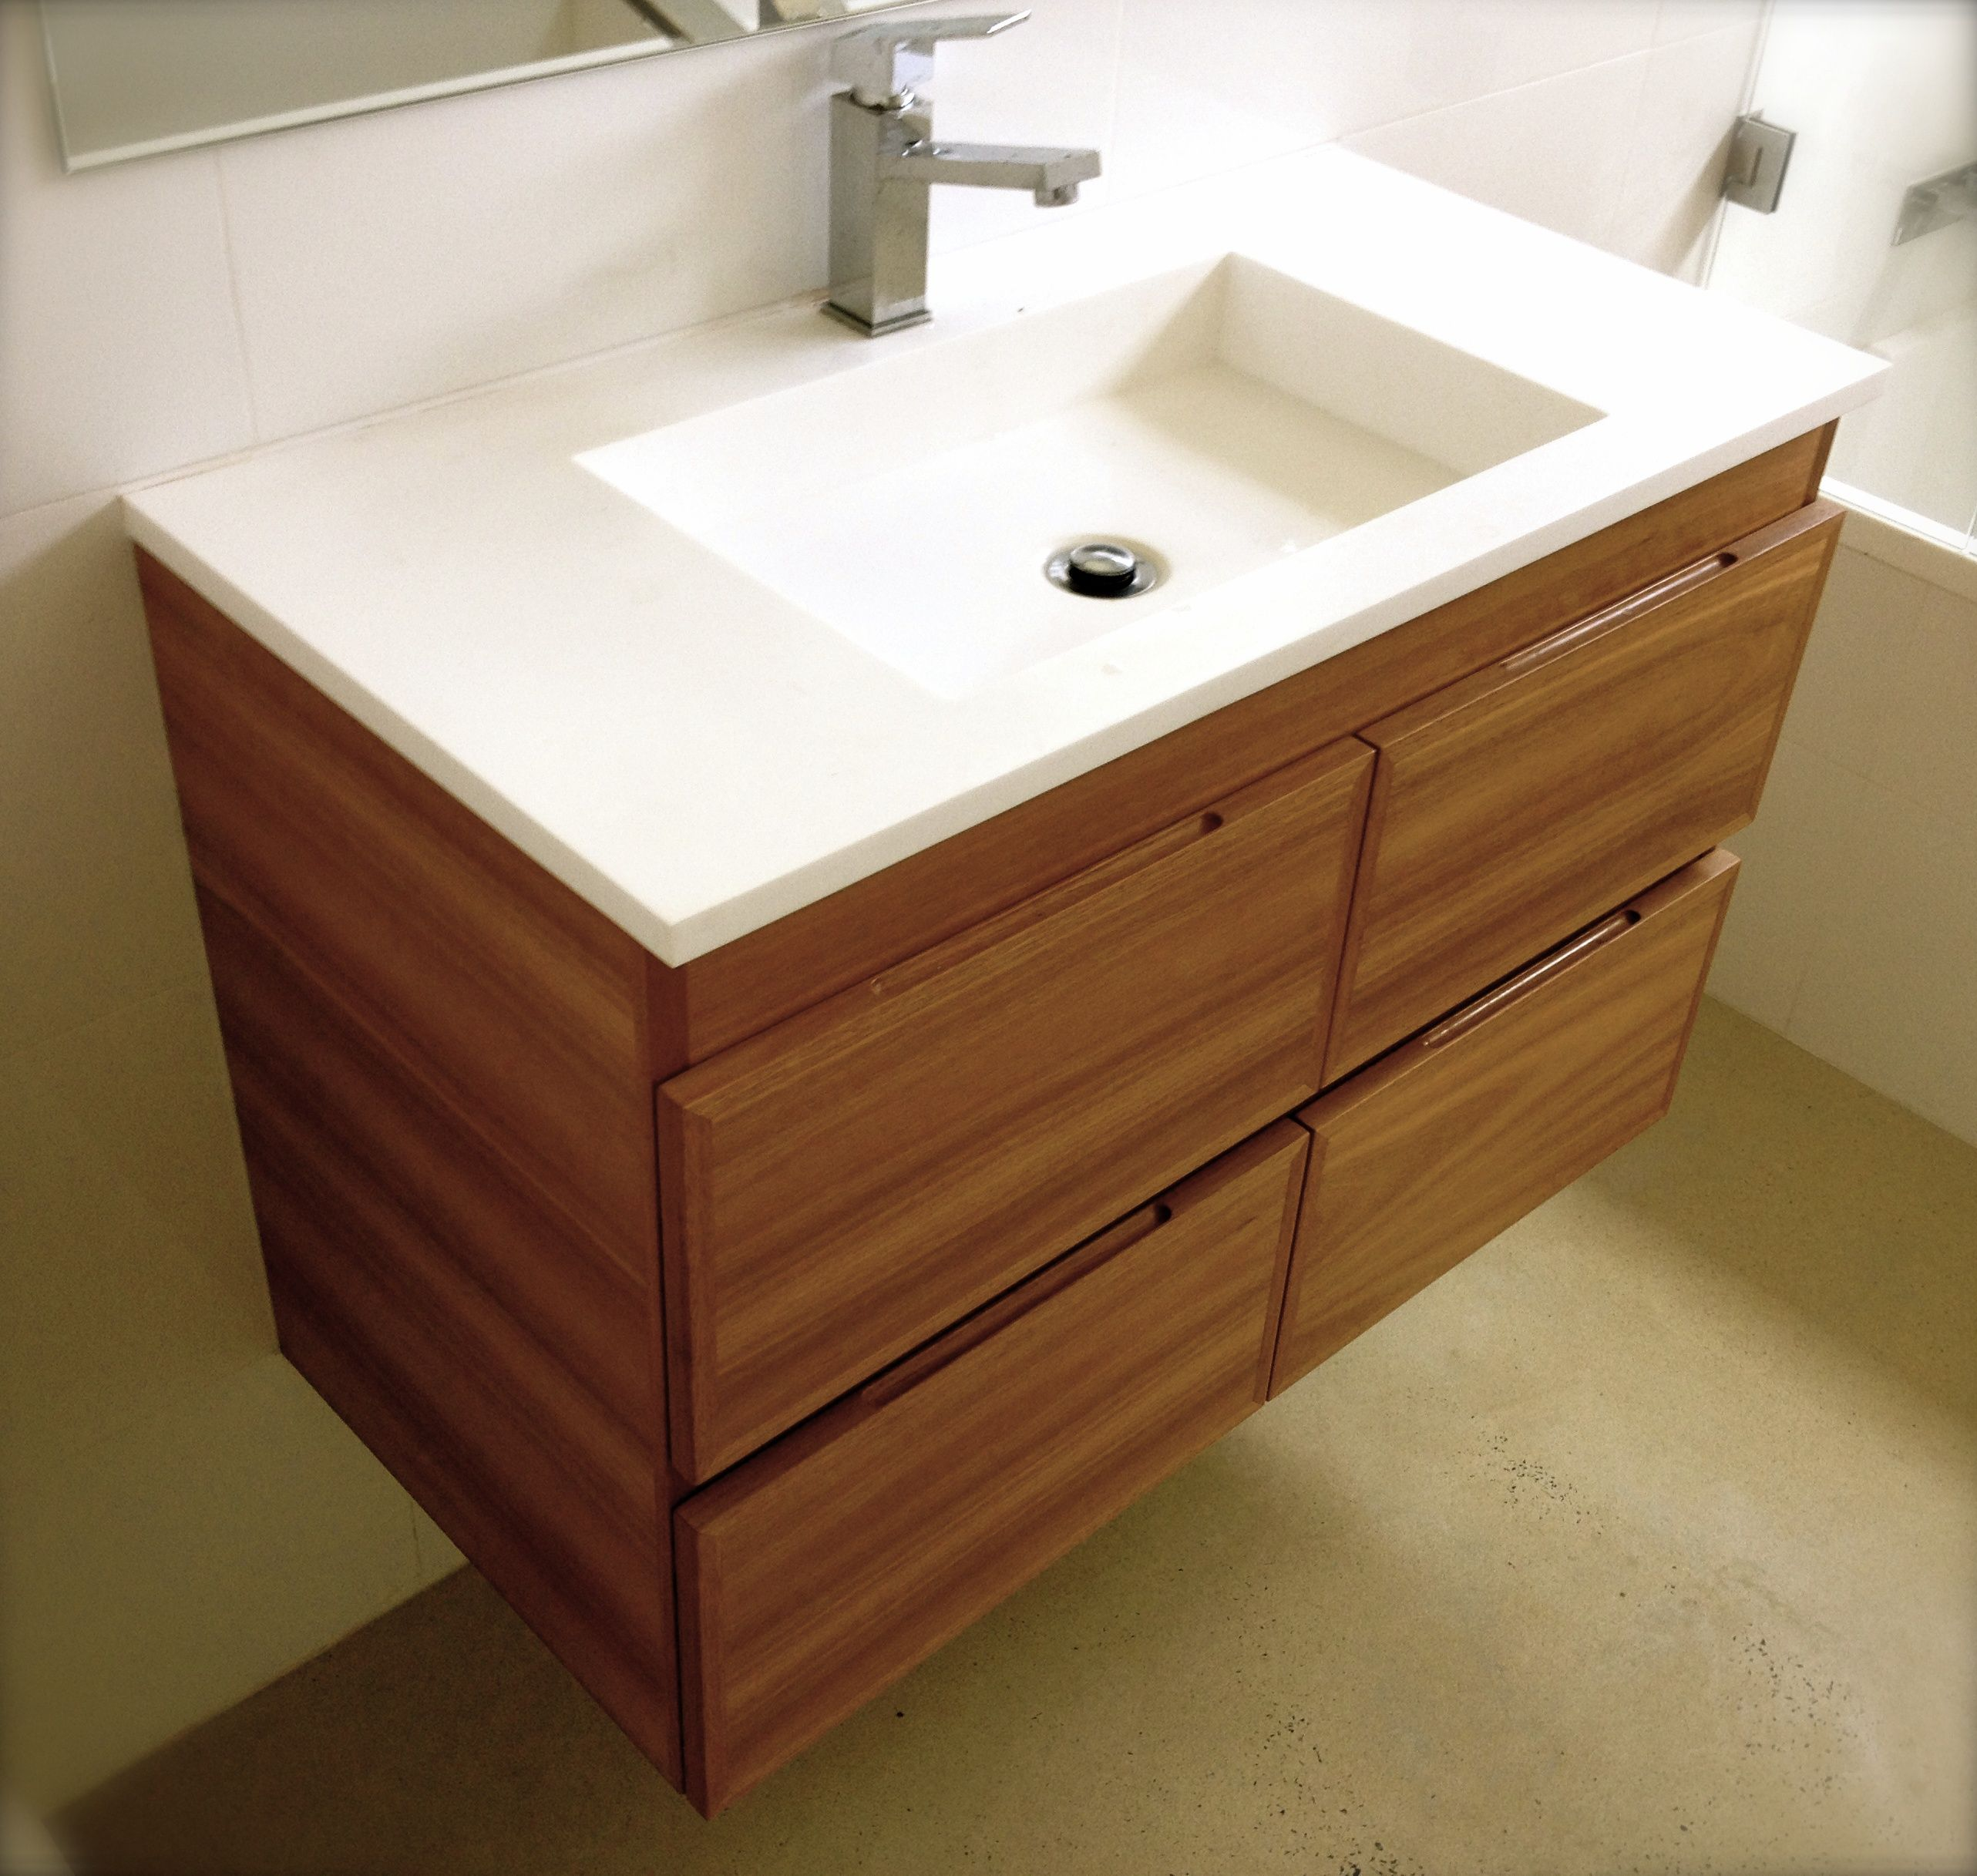 Ontario bathroom vanities - Contemporary Modern Bathroom Vanity In Australian Blackbutt By Simon Parsons Perth Western Australia